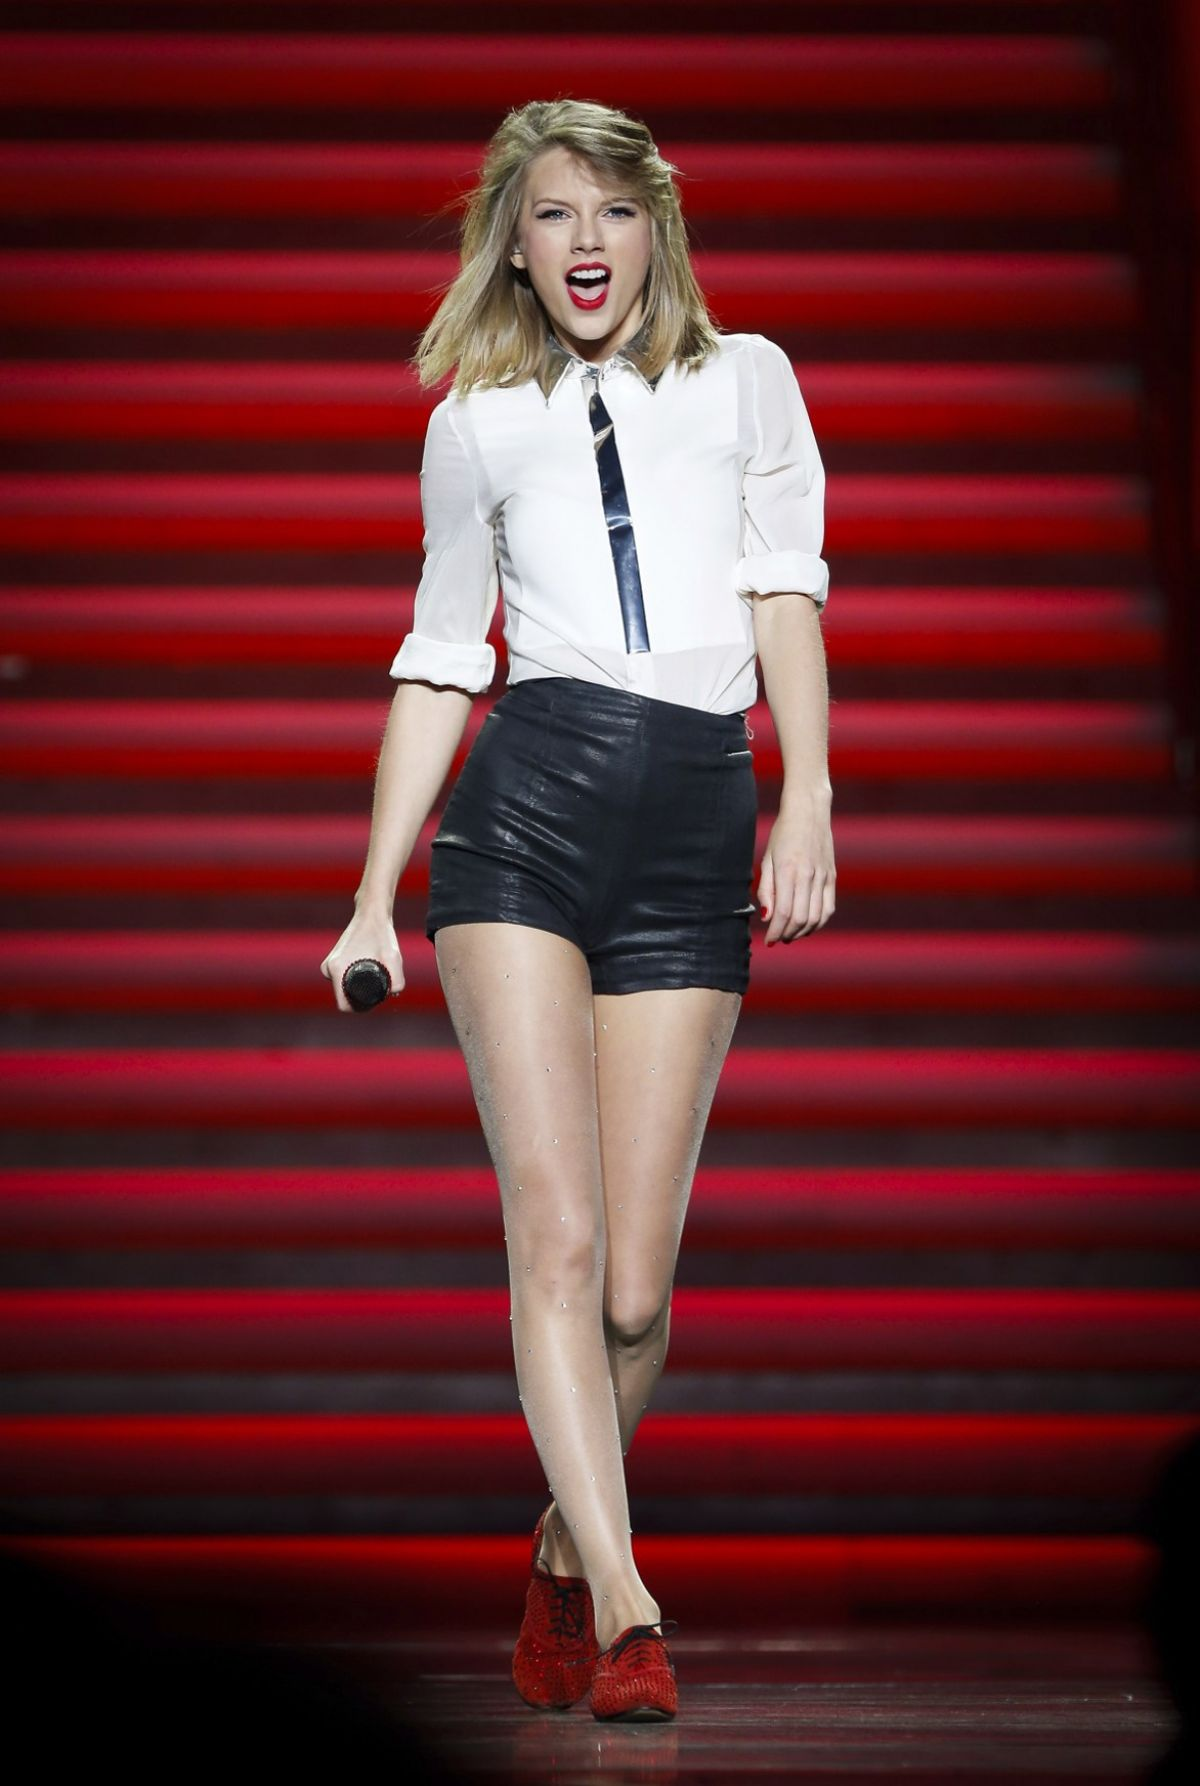 TAYLOR SWIFT Performs at a Concert in Shanghai